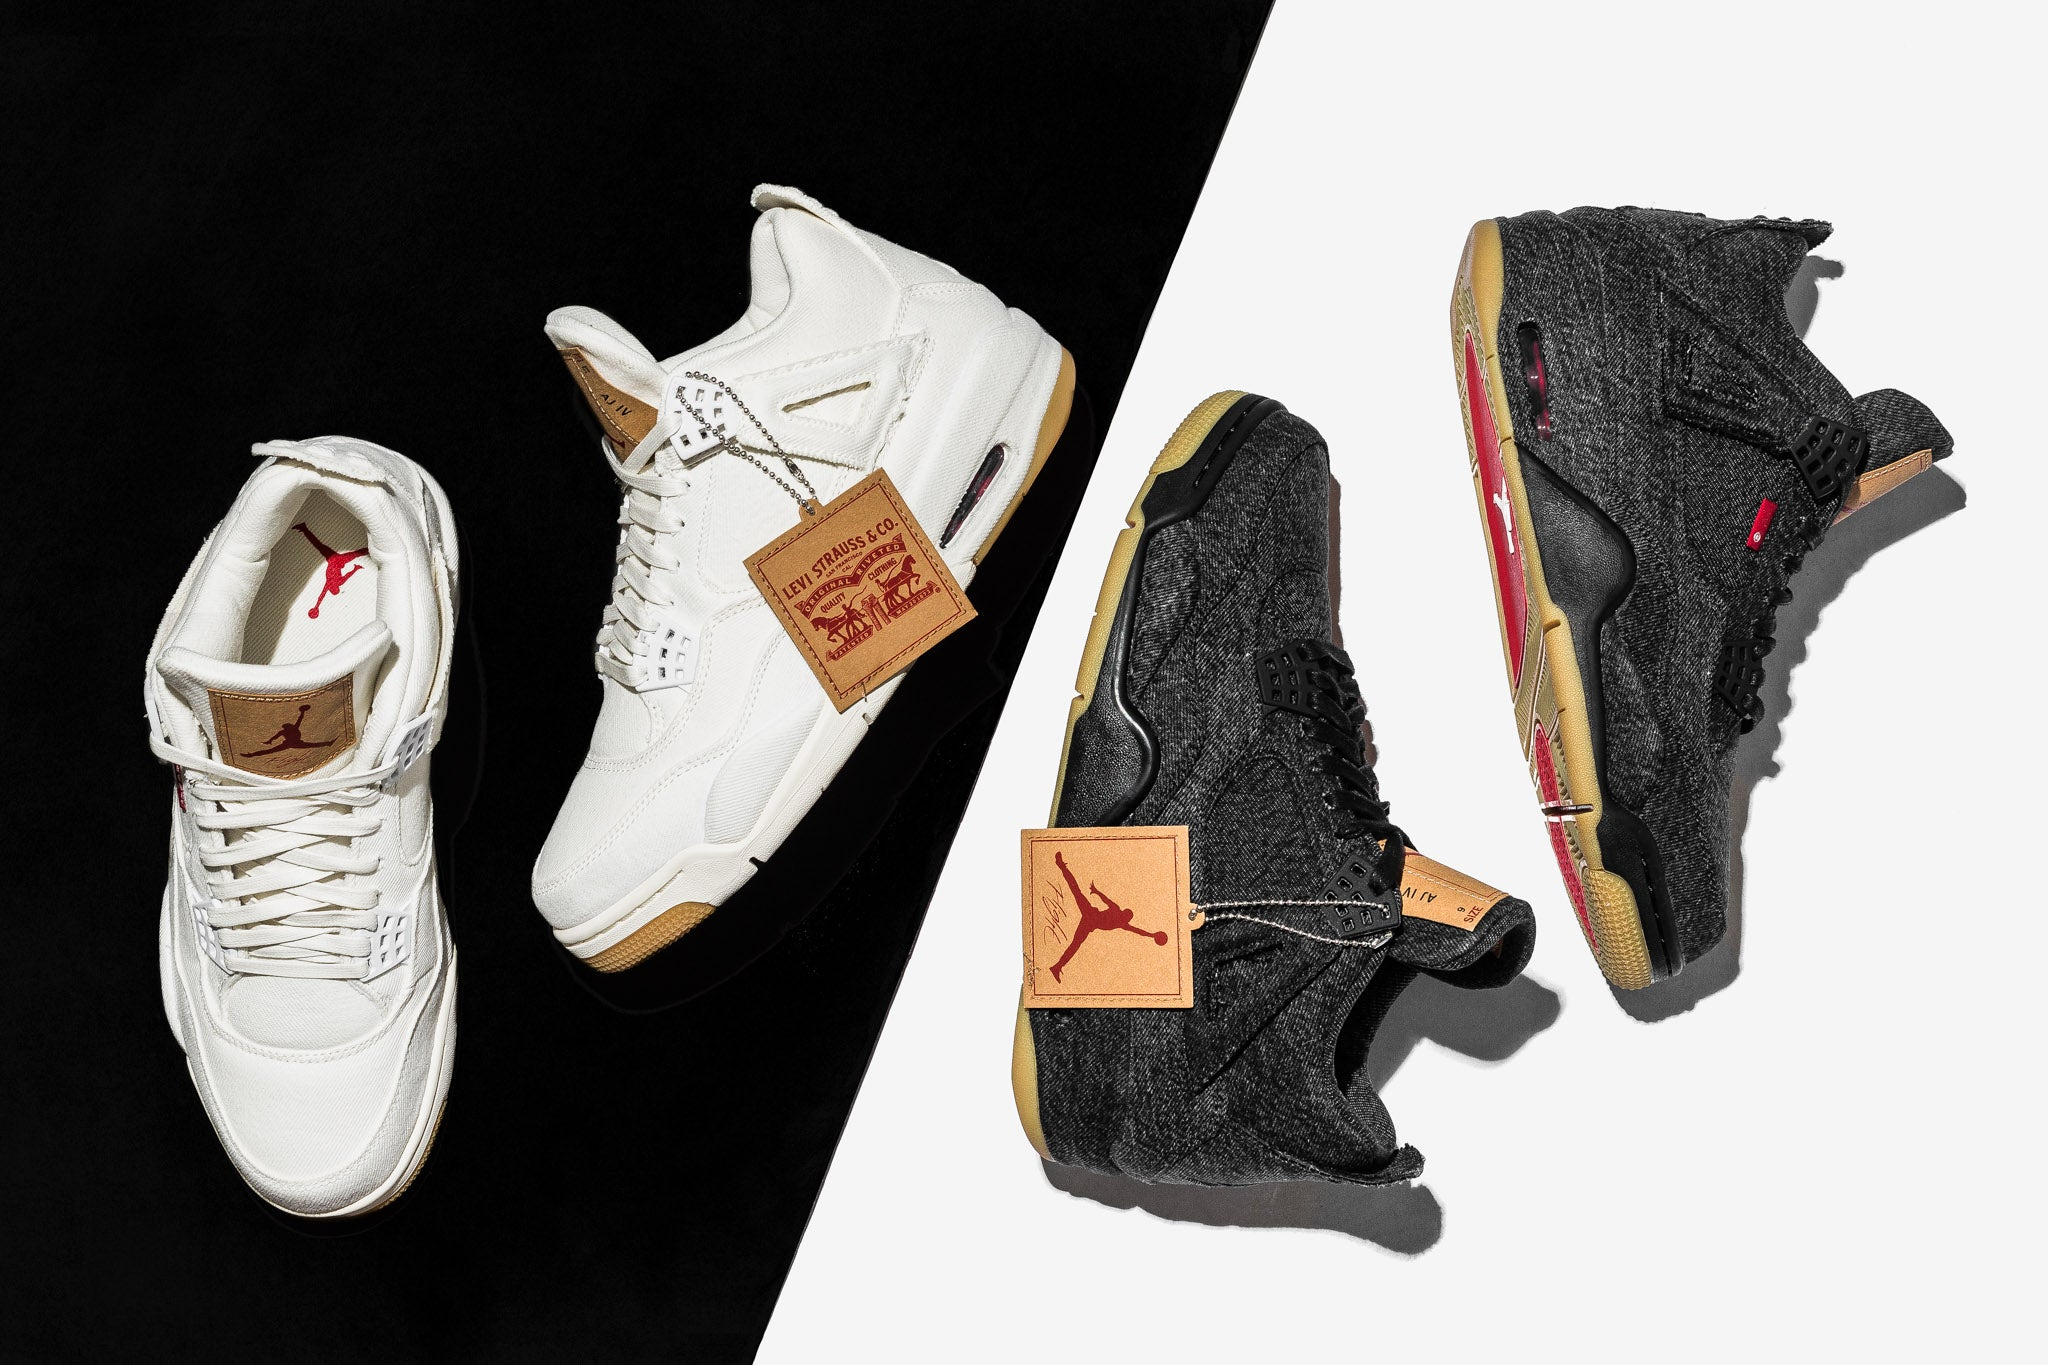 ed324ff4f7b Two Goliaths, Air Jordan and Levi's, come together once again for a black  denim and white denim rendition of the Air Jordan 4. After the massive  success of ...